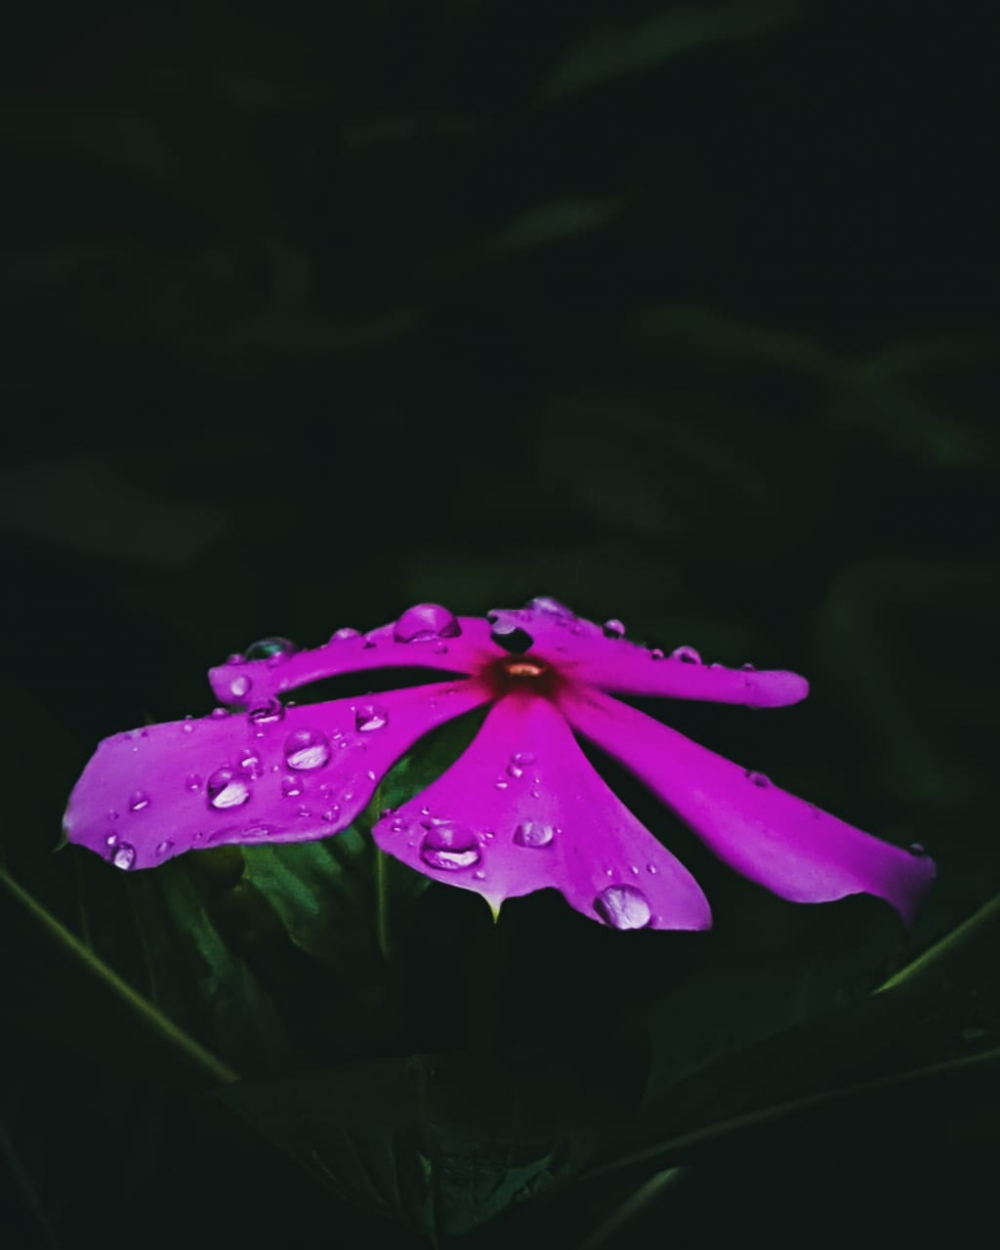 Capturing Different Hues of Monsoon #withGalaxy - Image 3